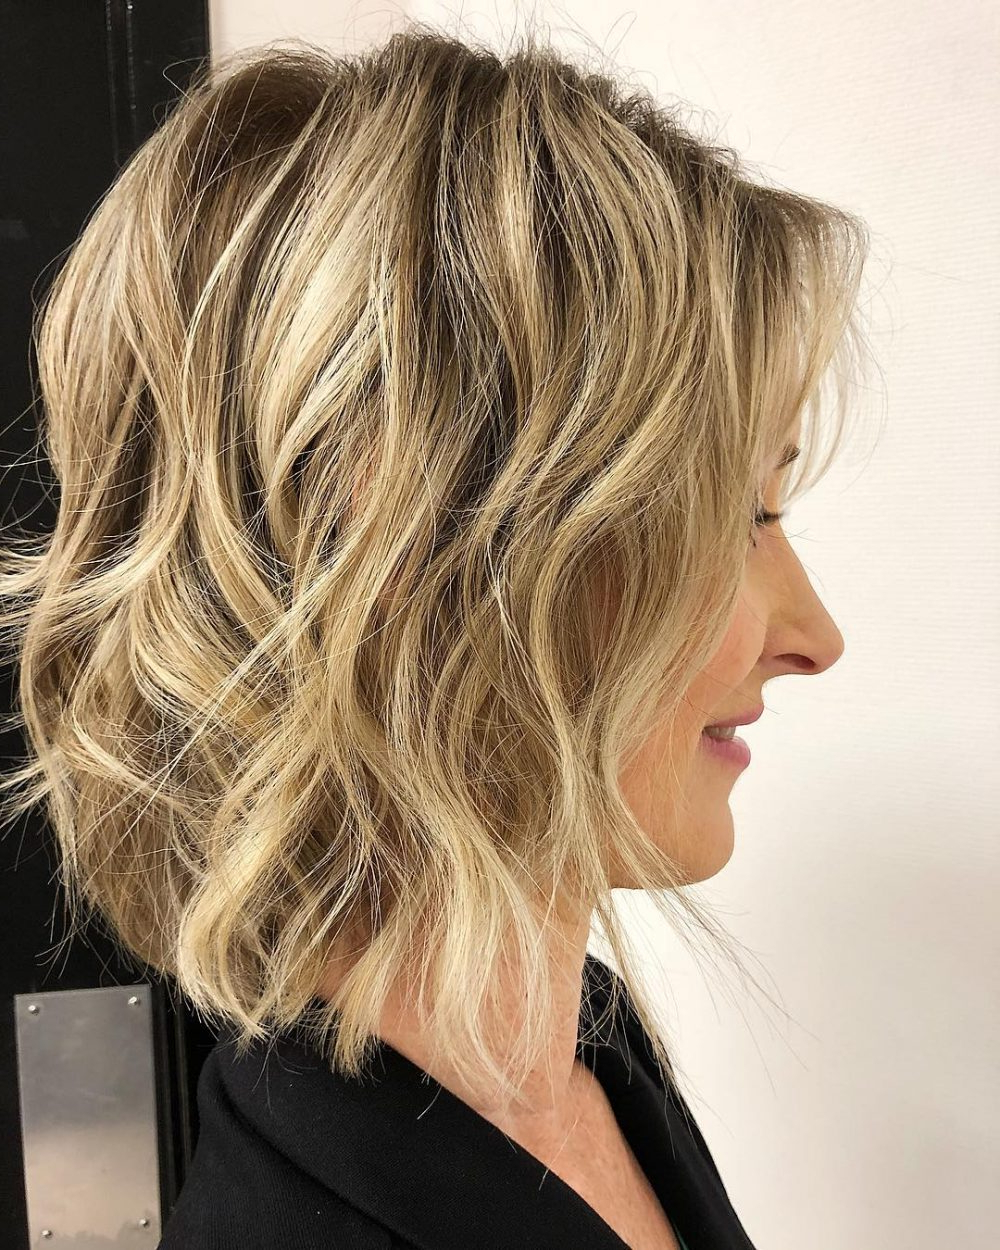 43 Perfect Short Hairstyles For Fine Hair In 2018 Within Short Haircuts For Thick Fine Hair (View 5 of 25)